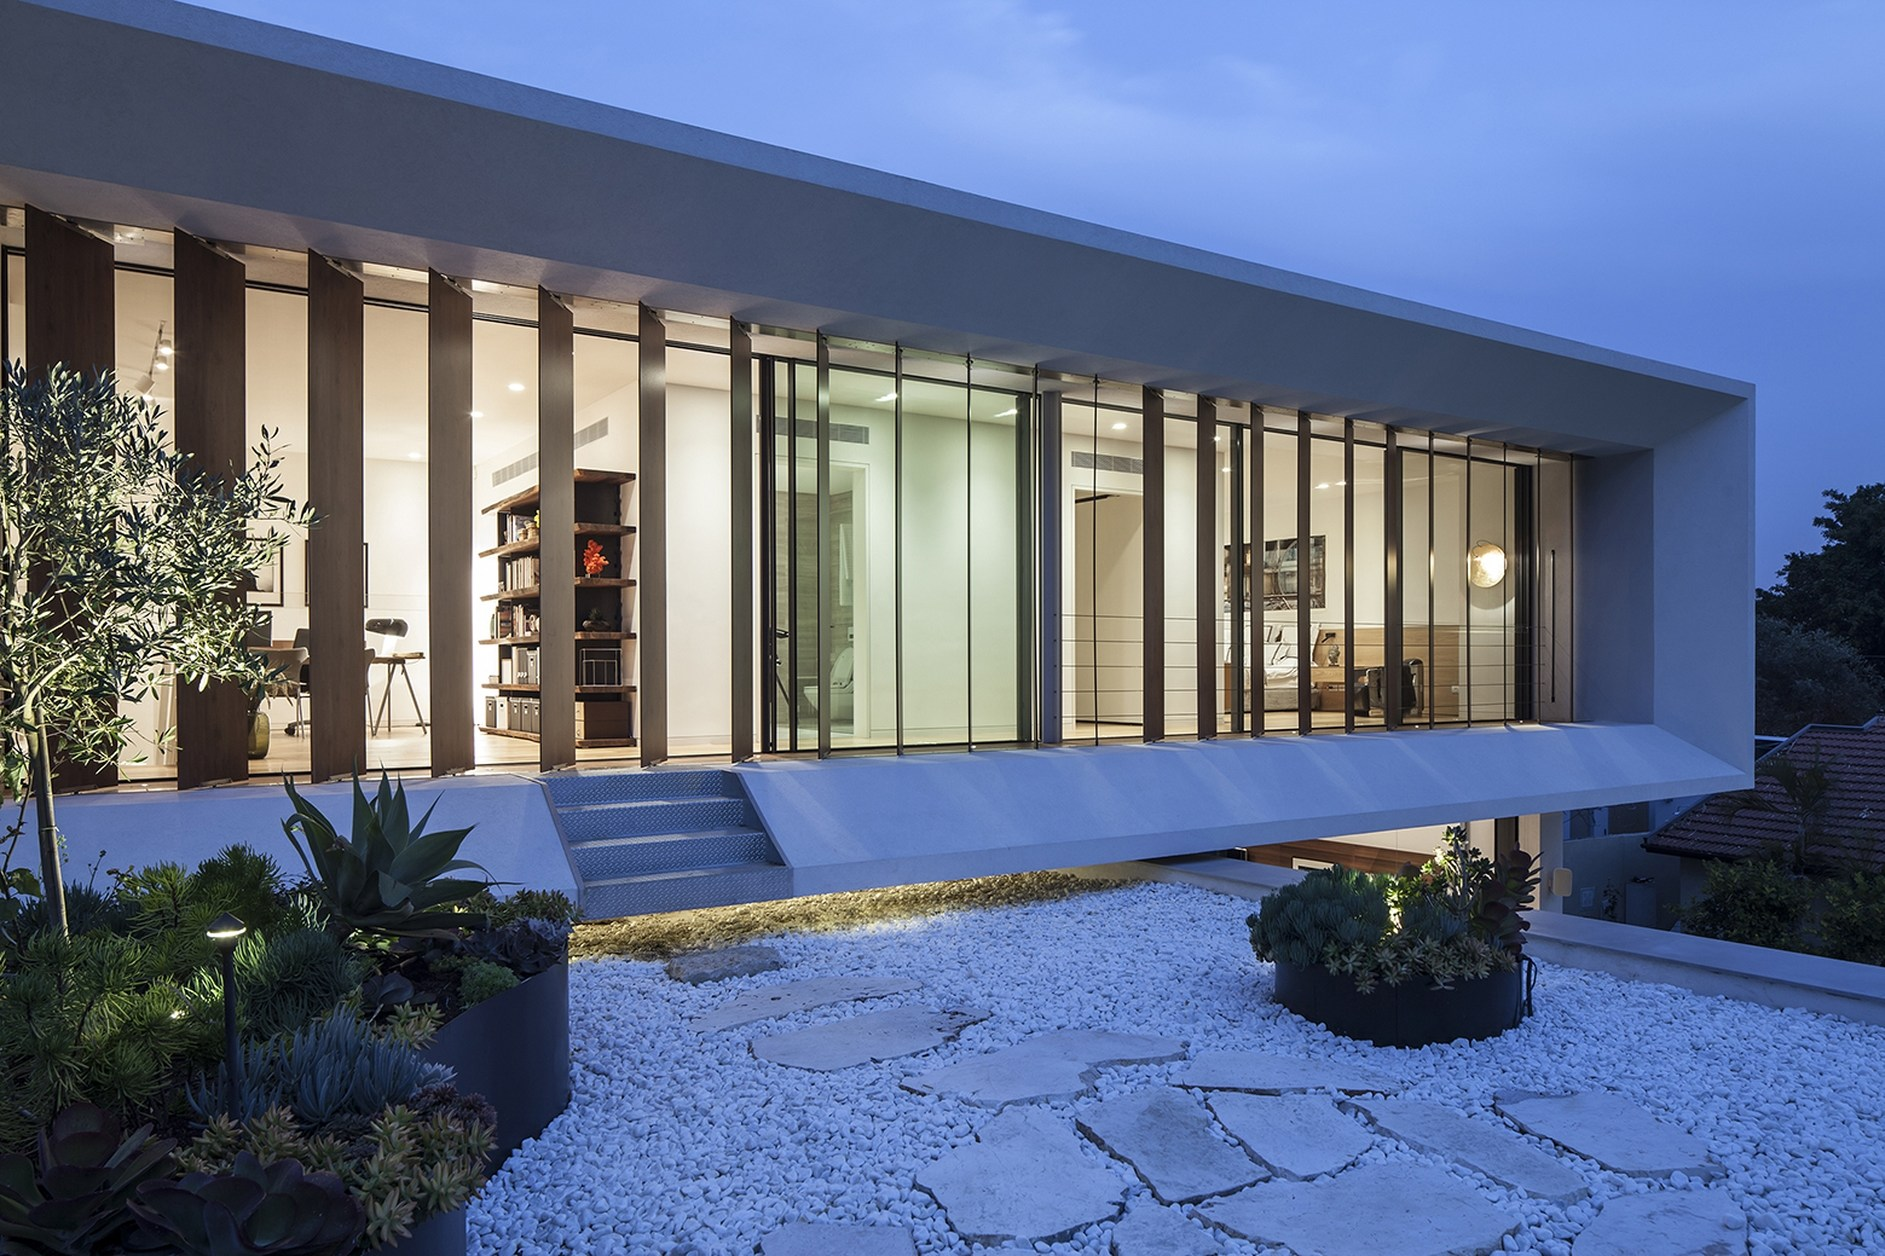 Mediterranean villa by paz gersh architects karmatrendz for Mediterranean villa design